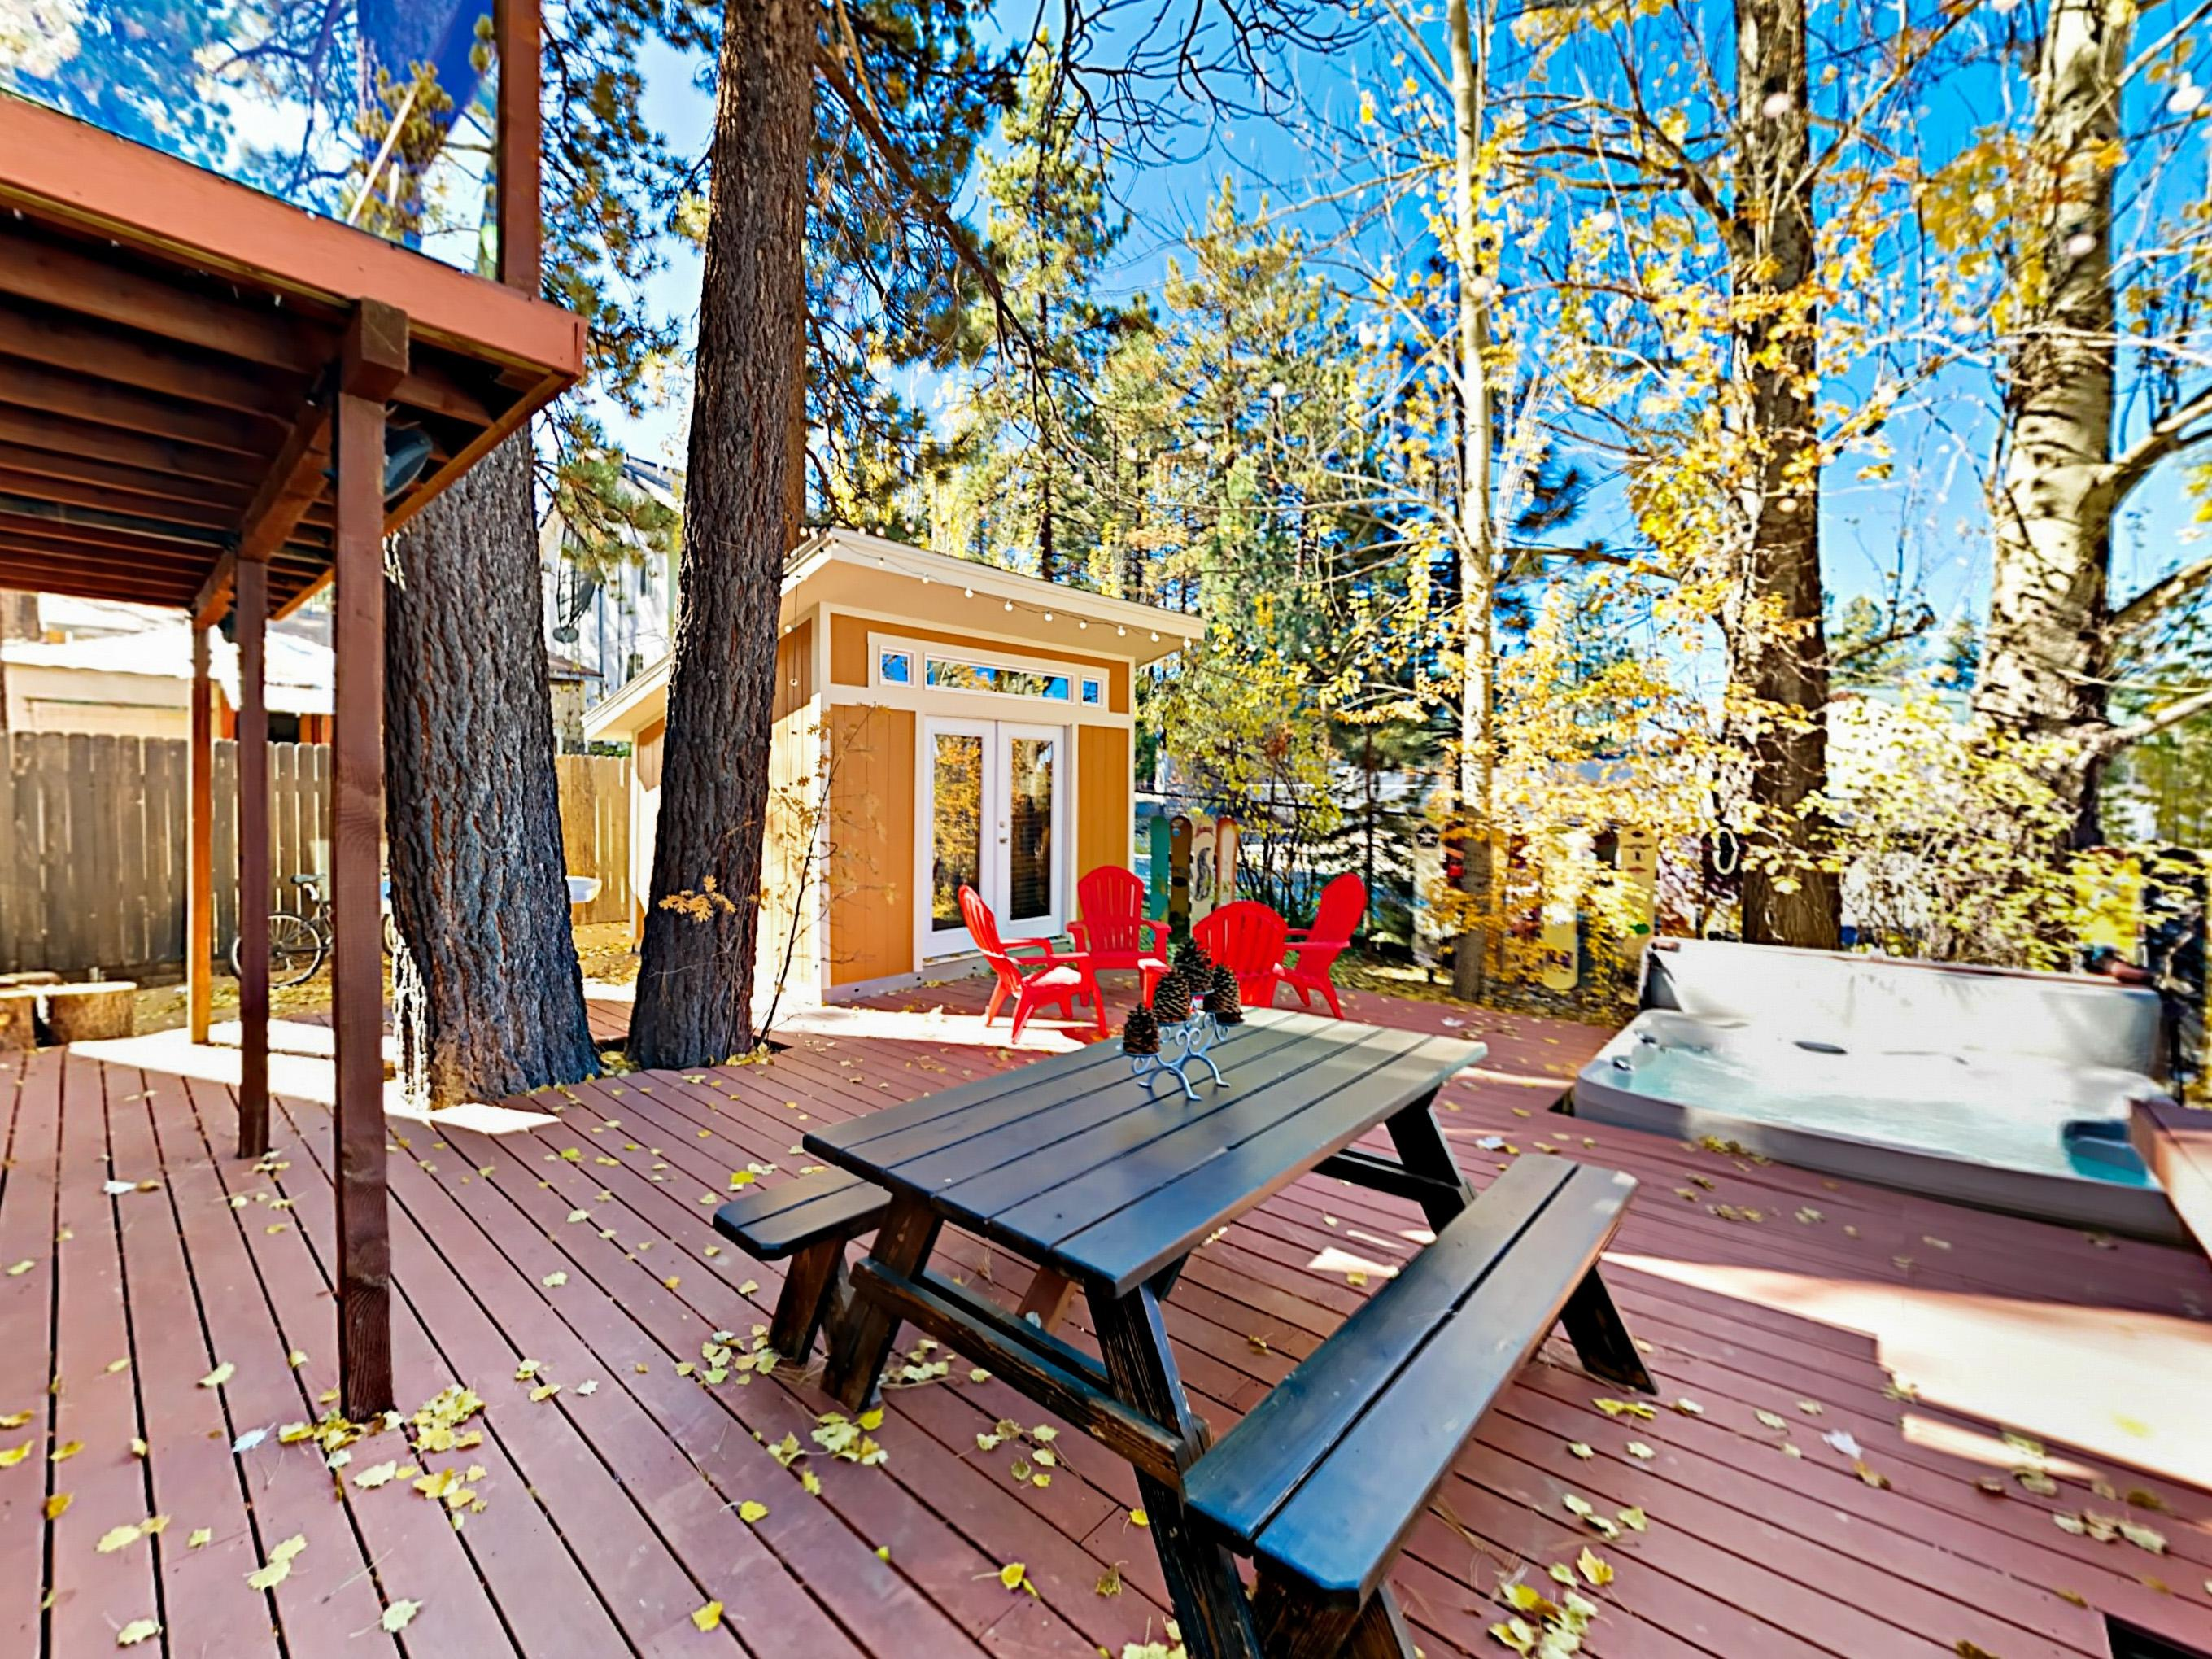 Welcome to Big Bear! Your home is professionally managed by TurnKey Vacation Rentals.